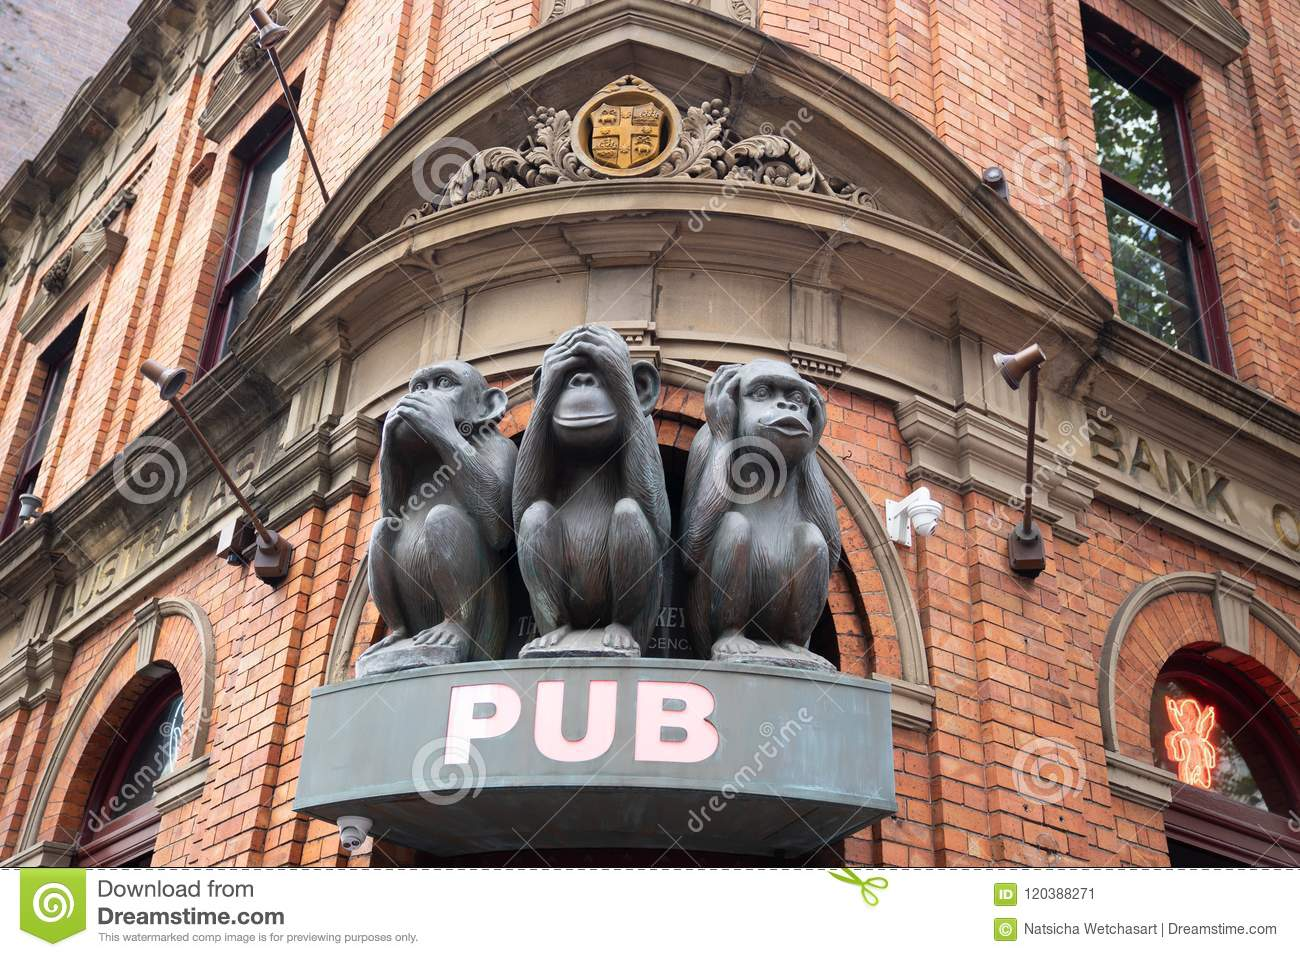 The Sculpture of Tree monkeys with different faces, No Speak, No See, No Hear on the gate of pub in Sydney